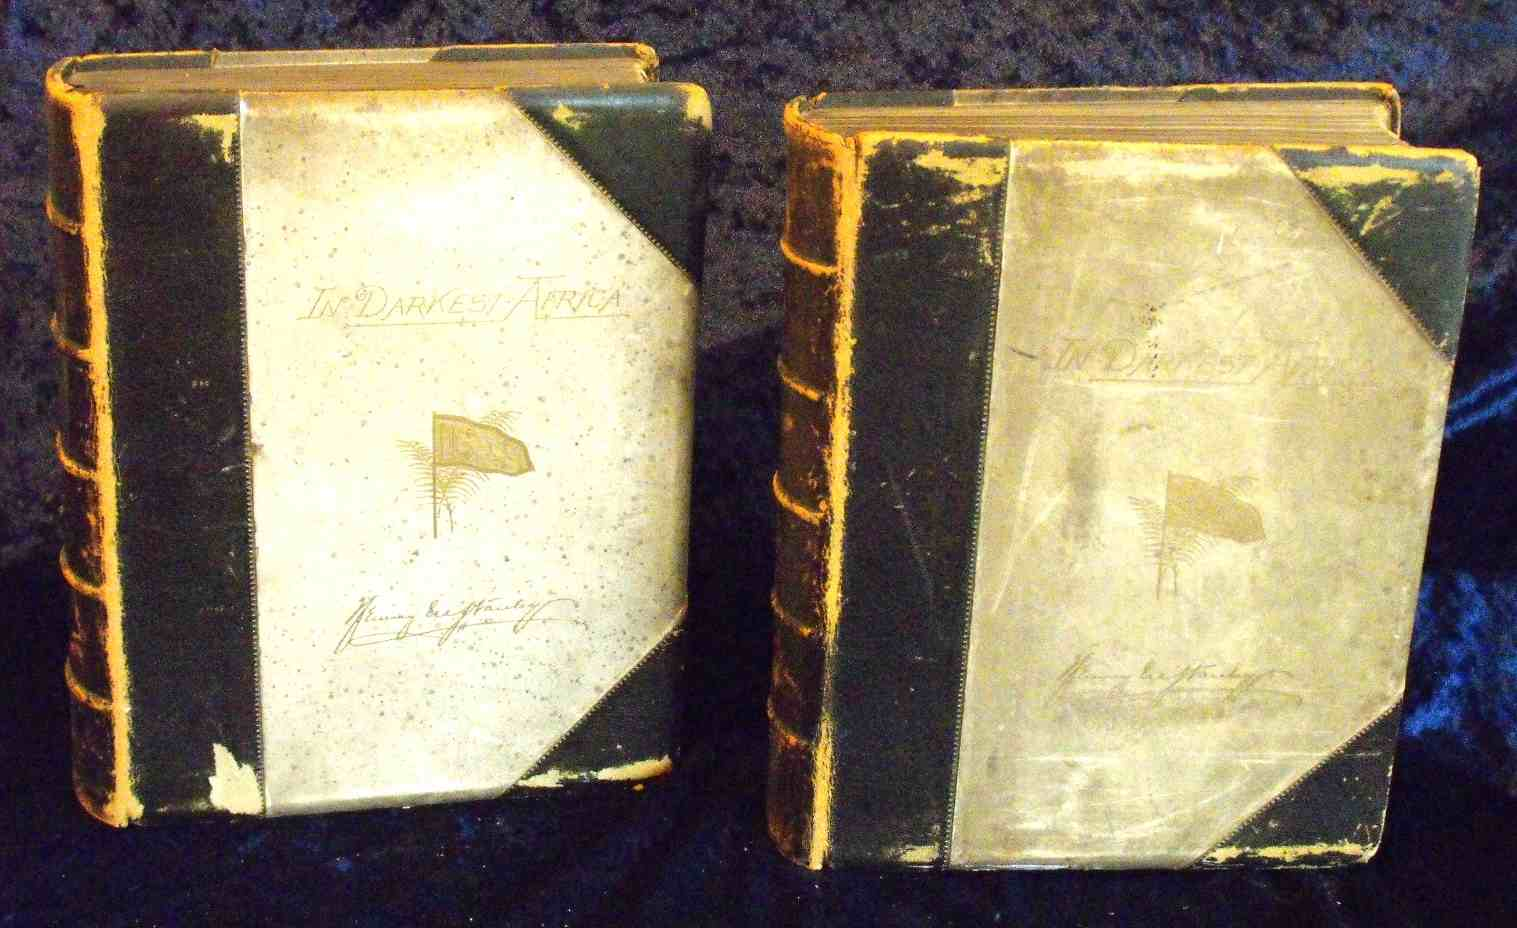 Corner repairs and restoration of worn leather bindings